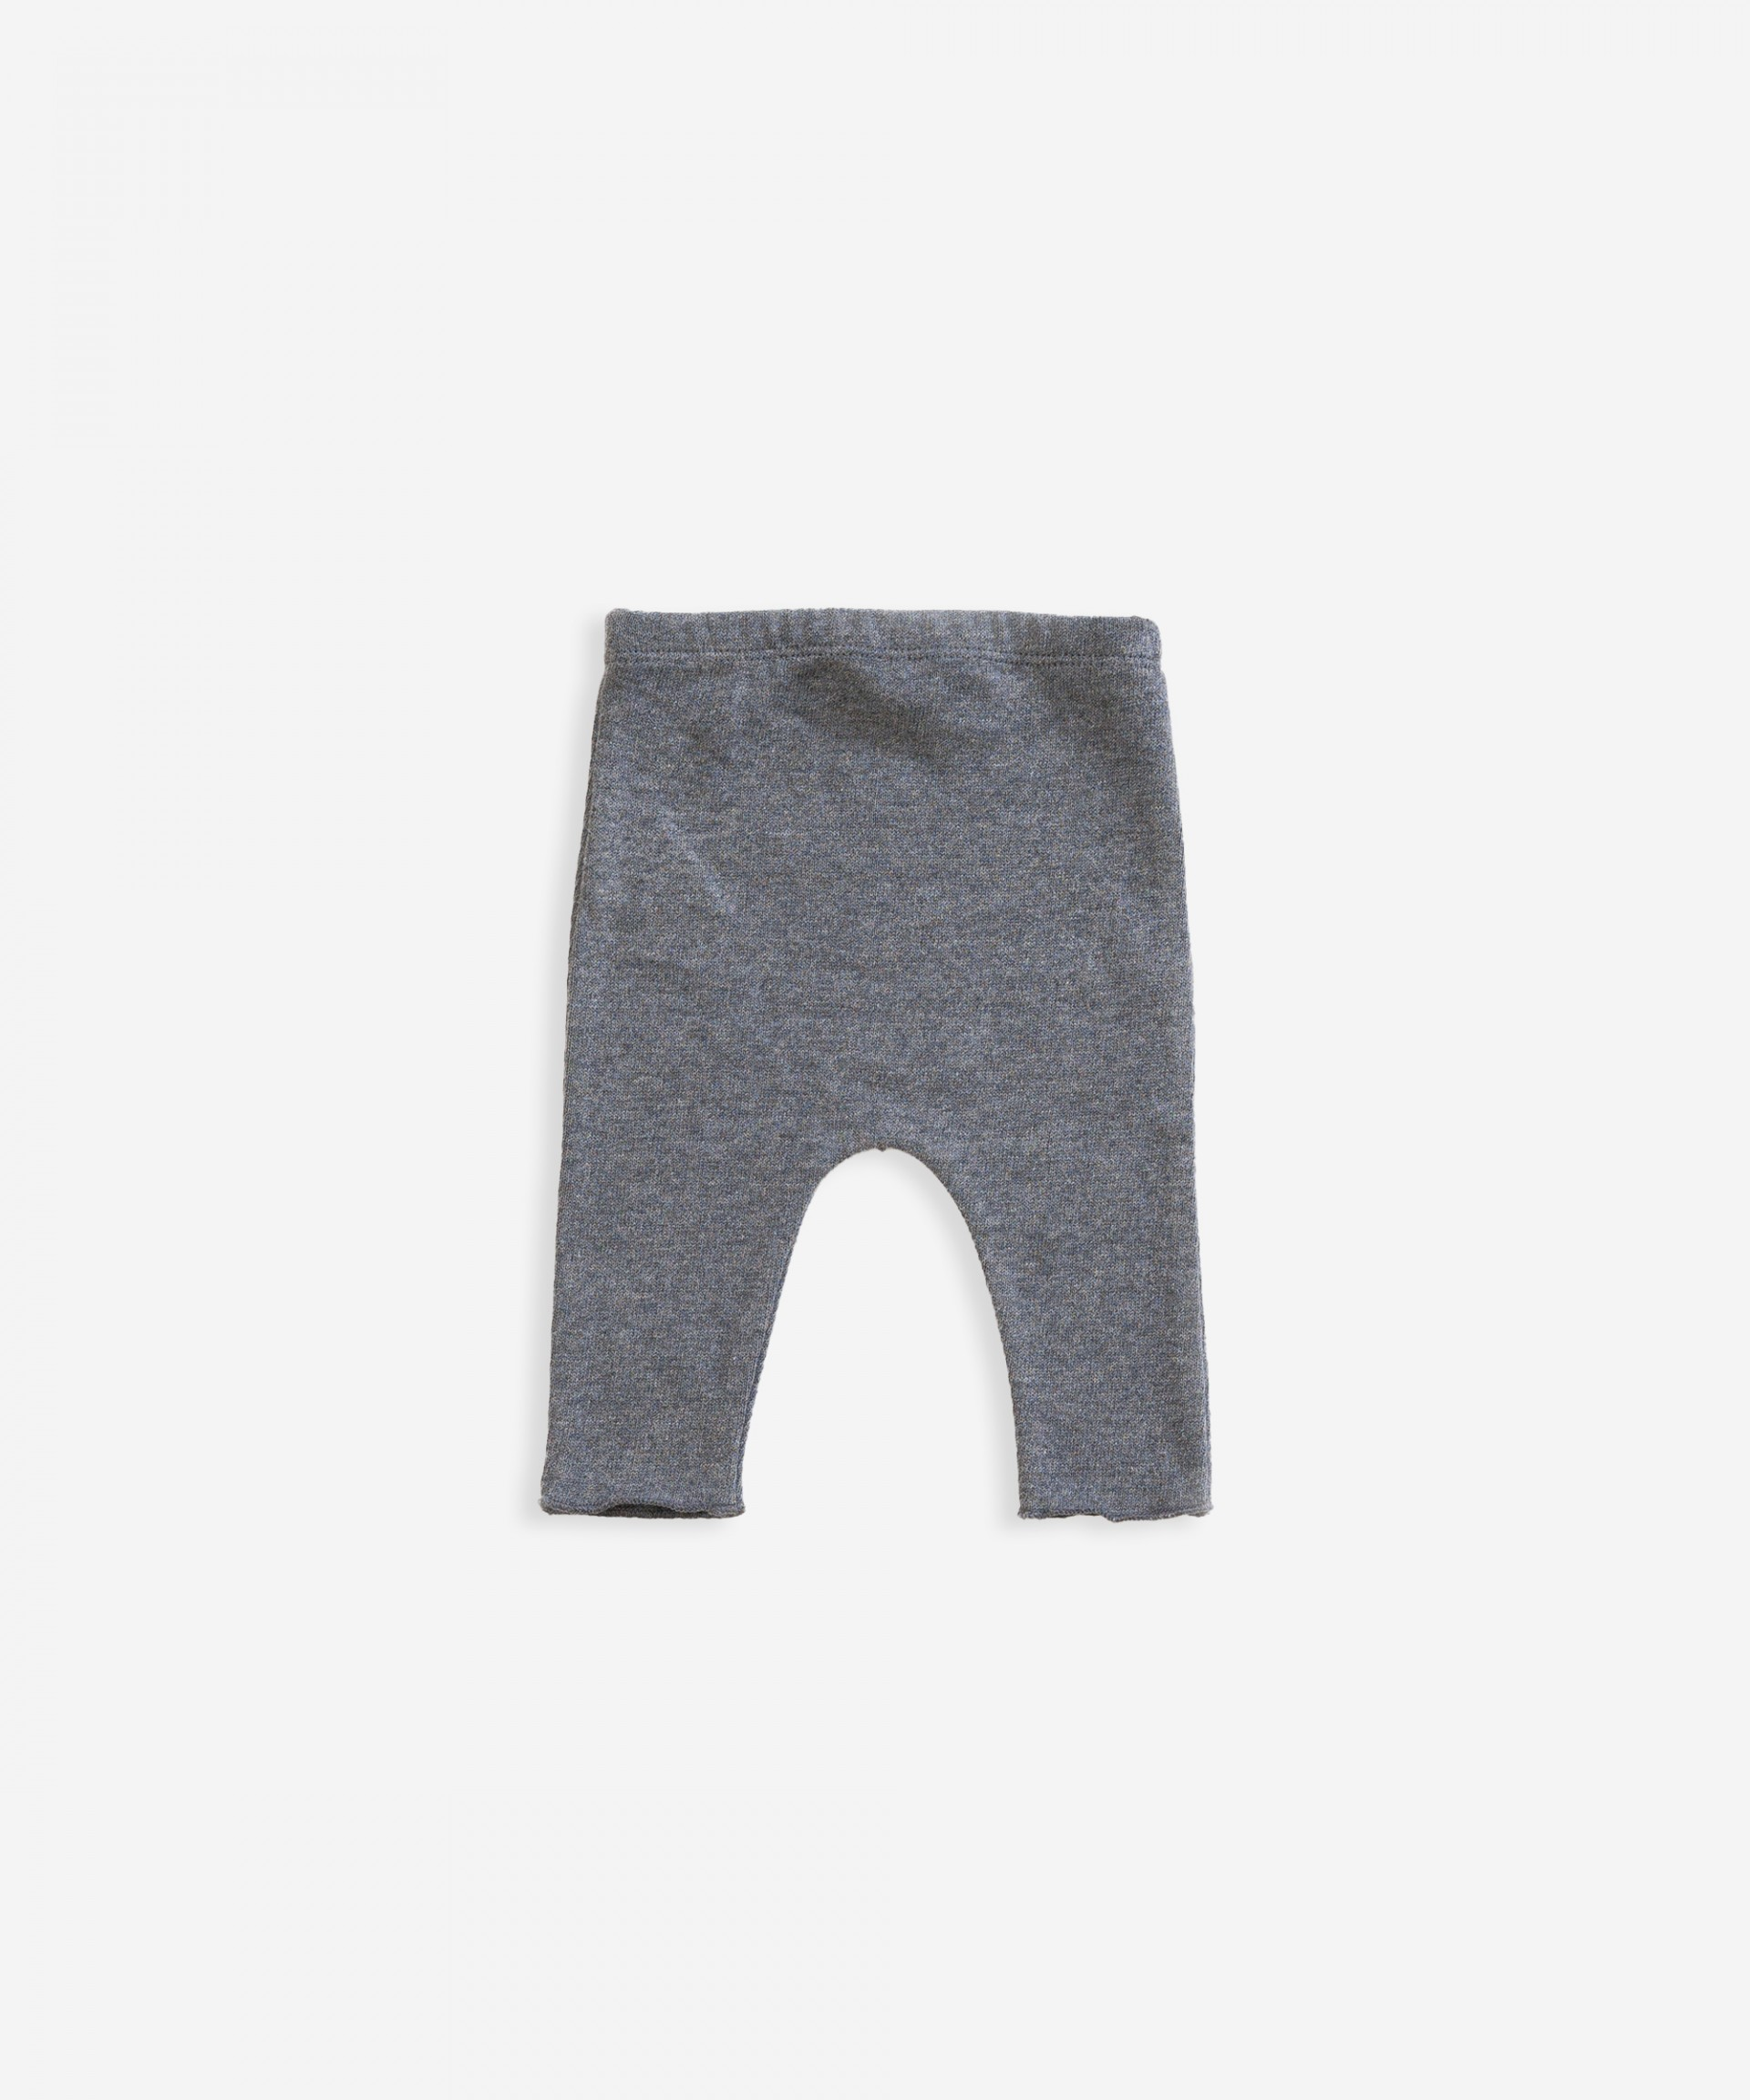 Cotton trousers with decorative button | Weaving